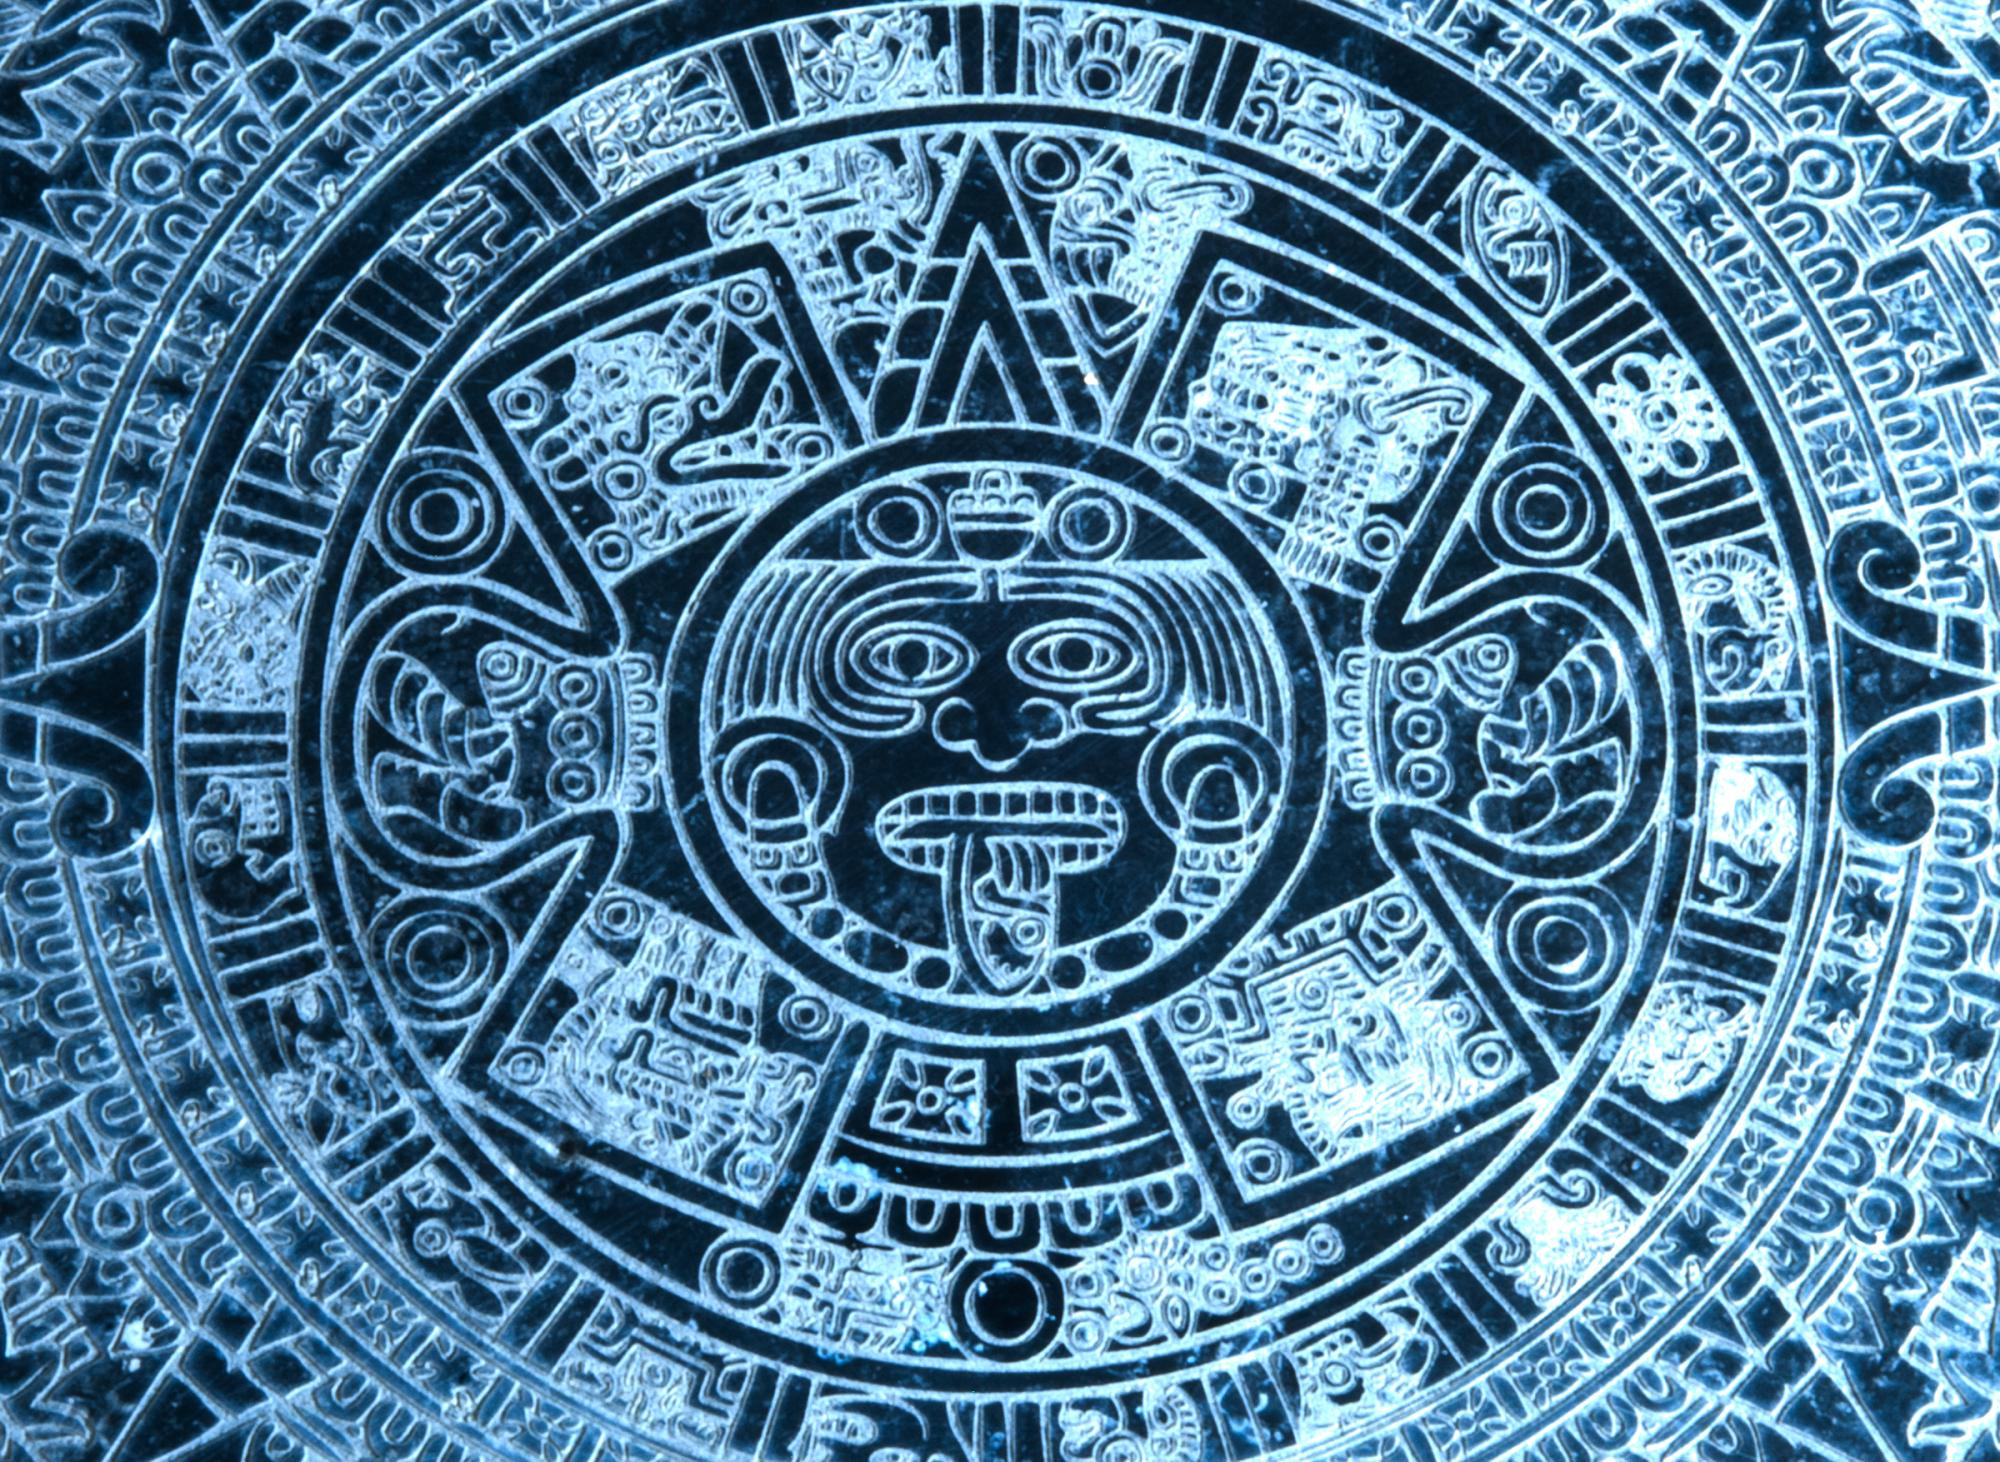 Aztec Calender close up on a Dolomite Tile